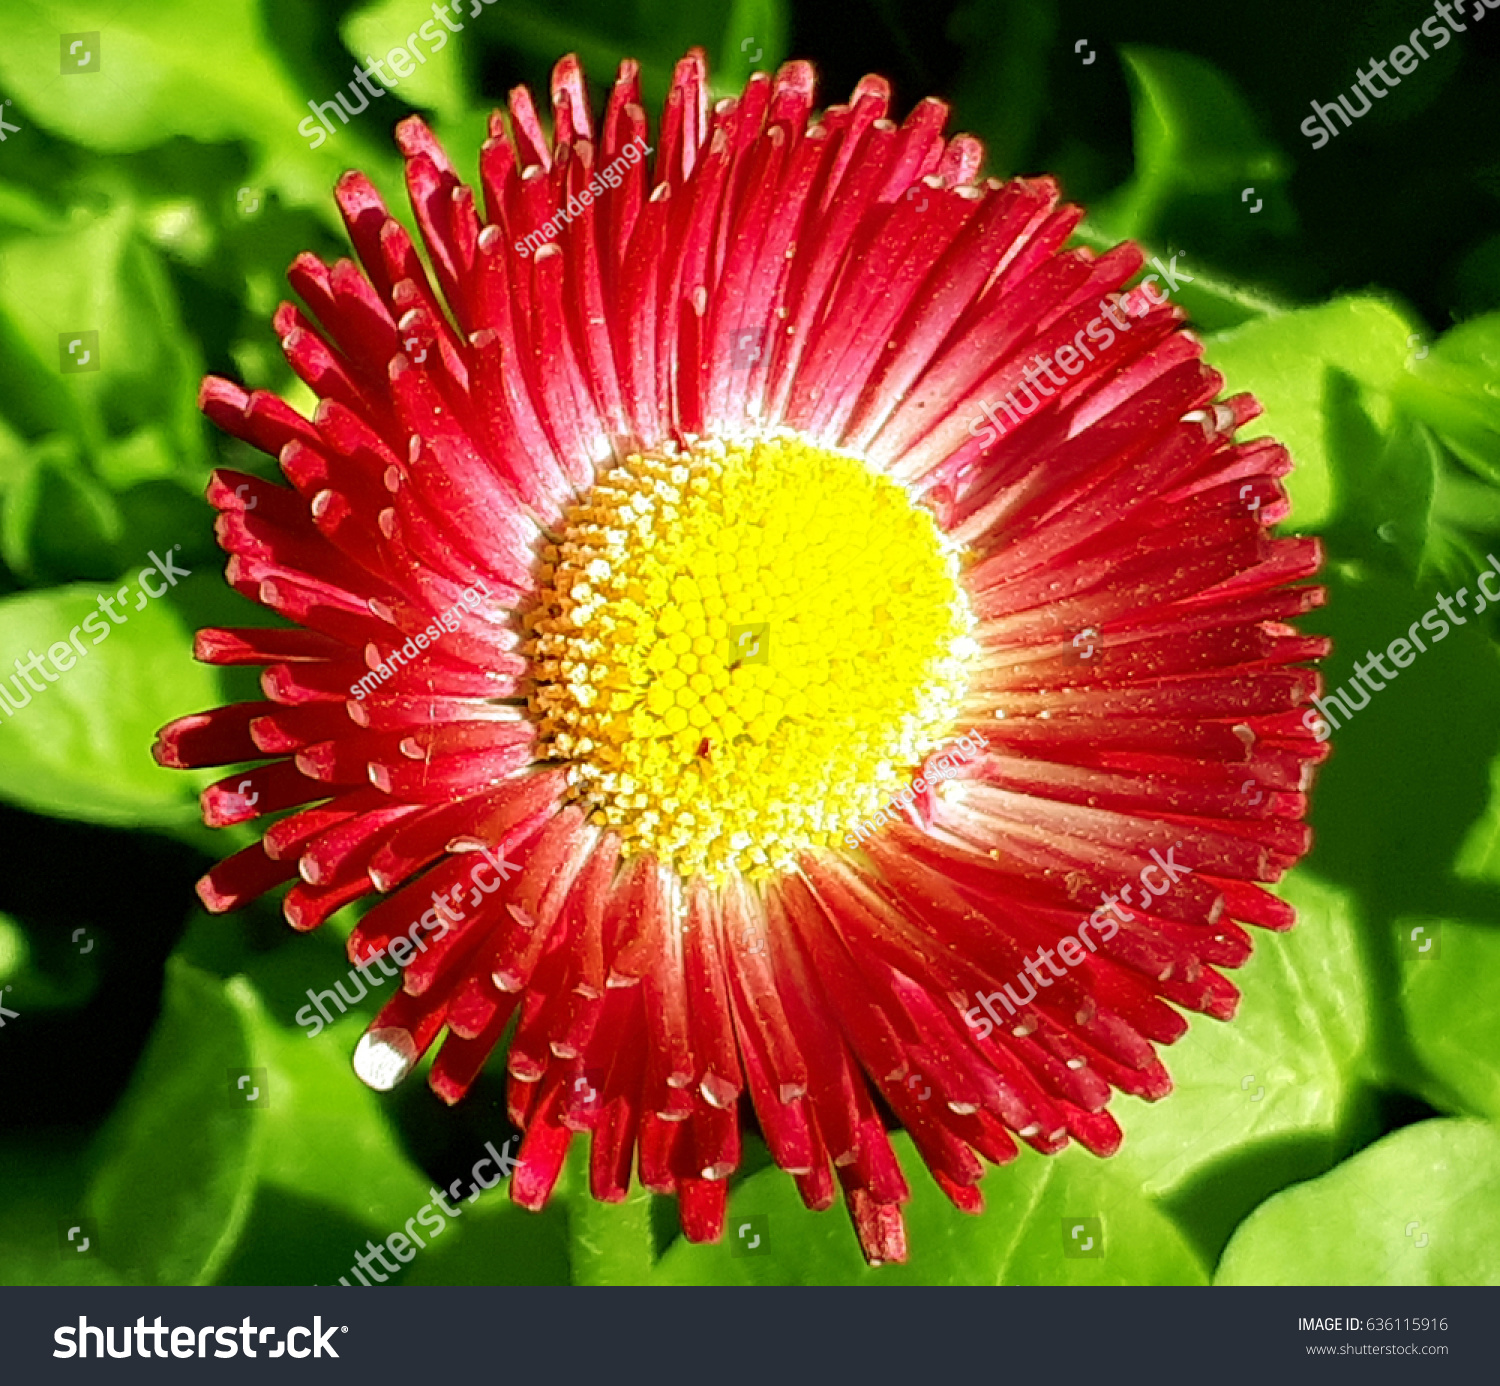 Beautiful red flower on greens stock photo download now 636115916 beautiful red flower on the greens izmirmasajfo